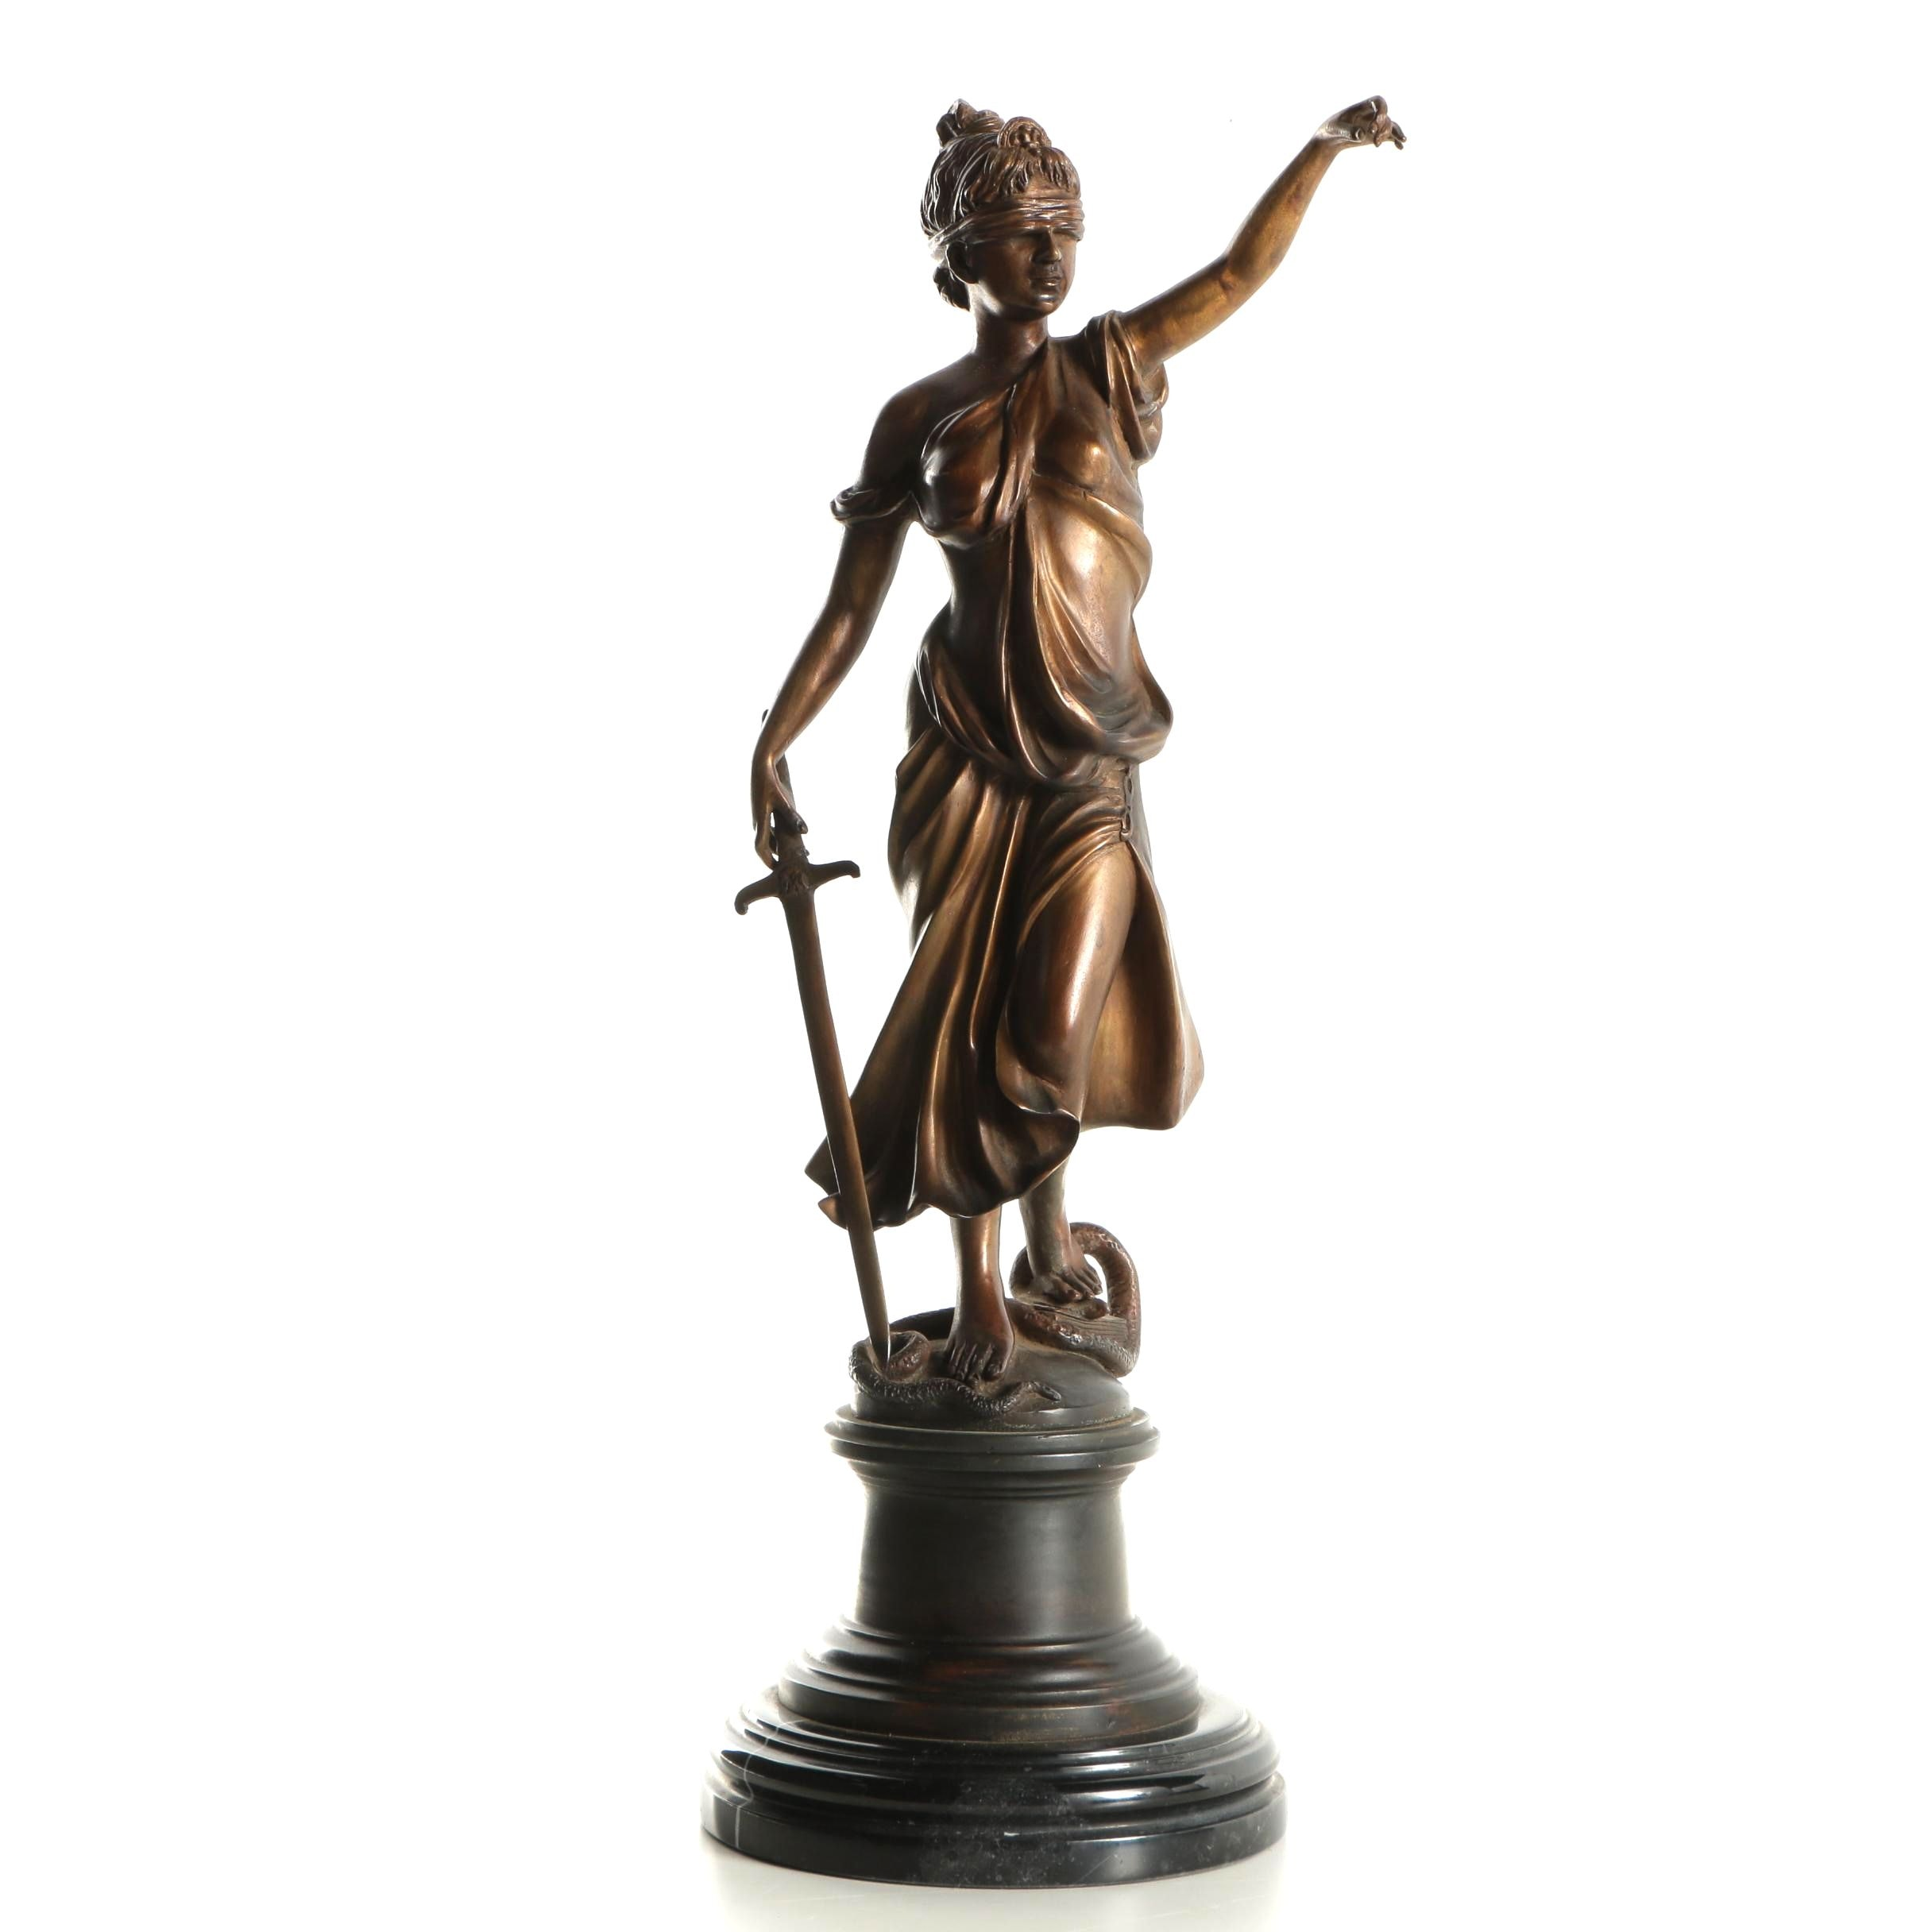 Brass Sculpture of Lady Justice